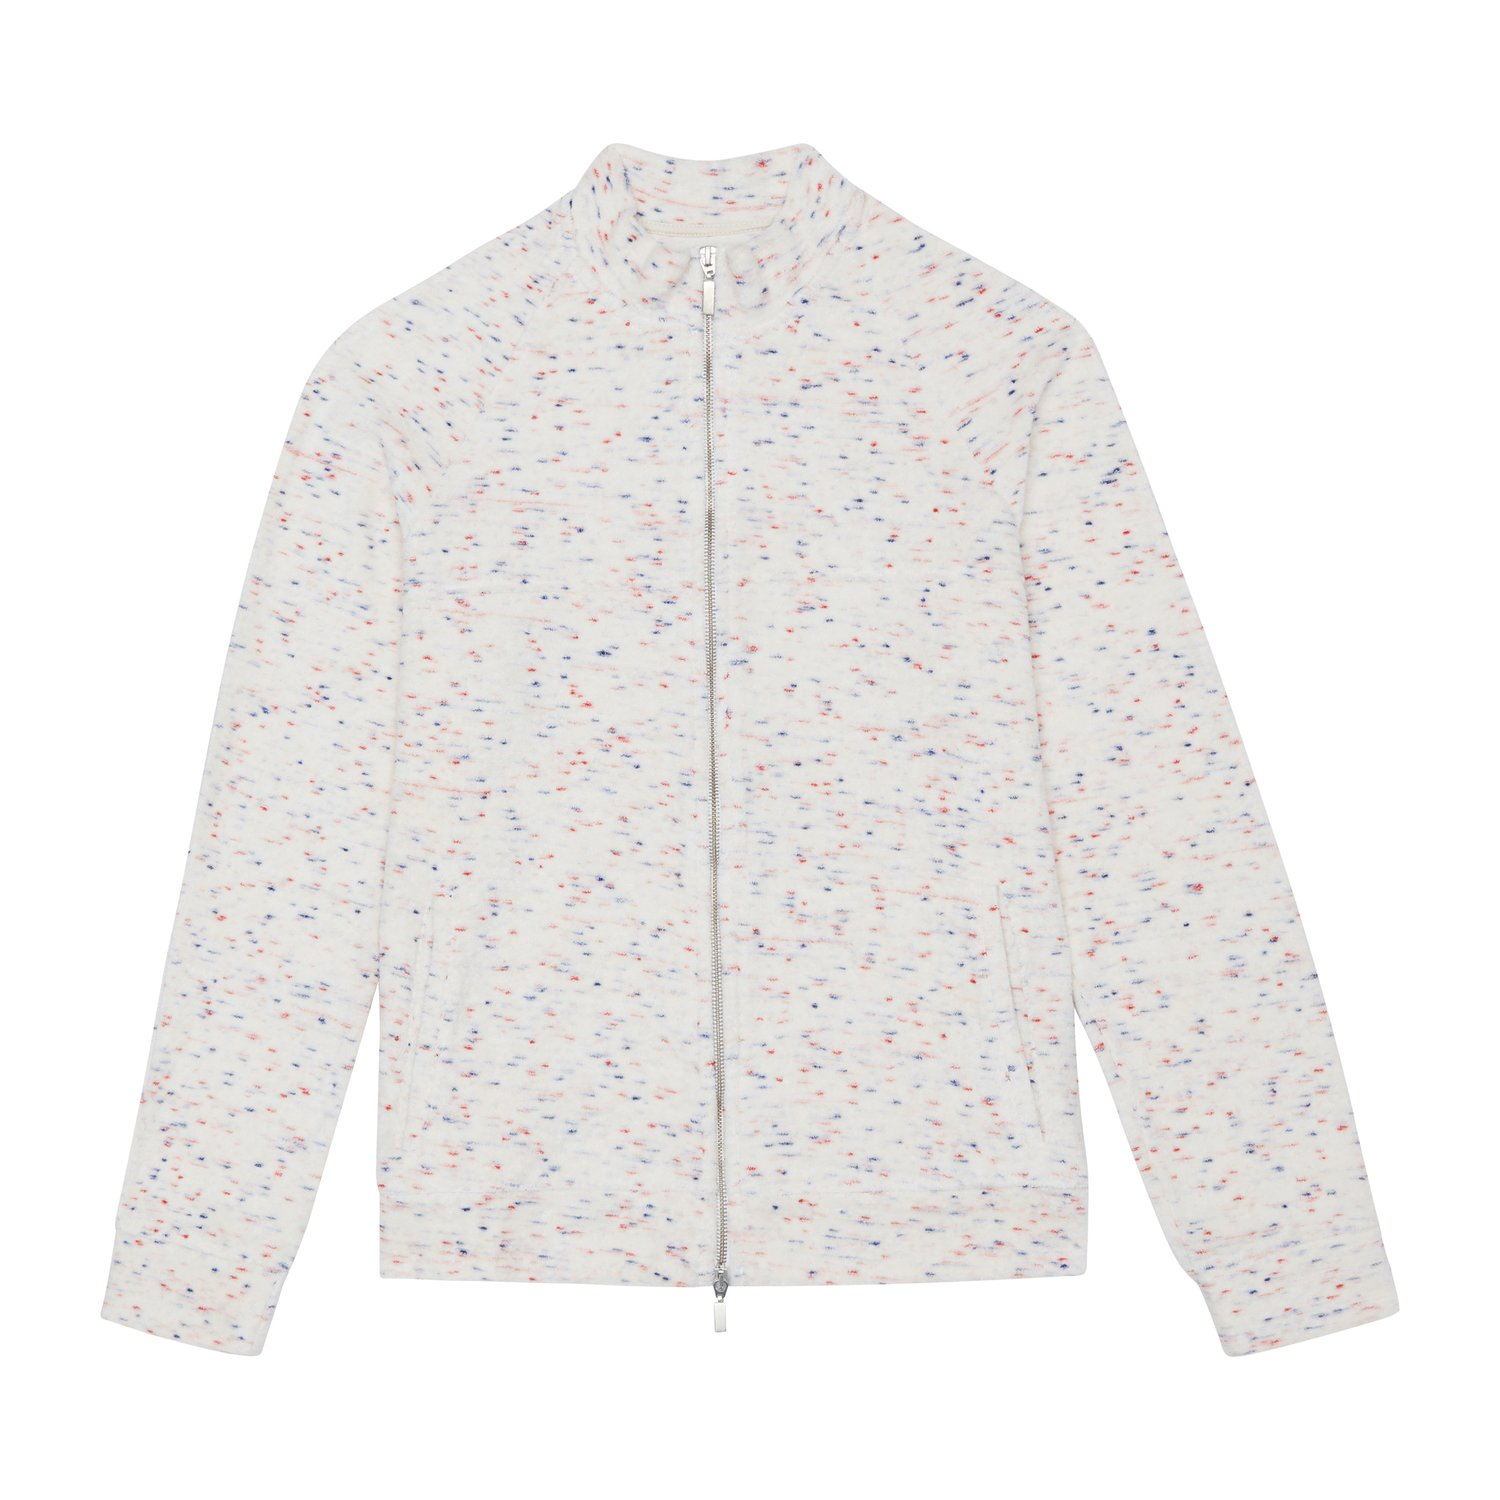 Prévu jacket - £100 - Part of the new season collection, with the towelling fabric flecked with red and blue